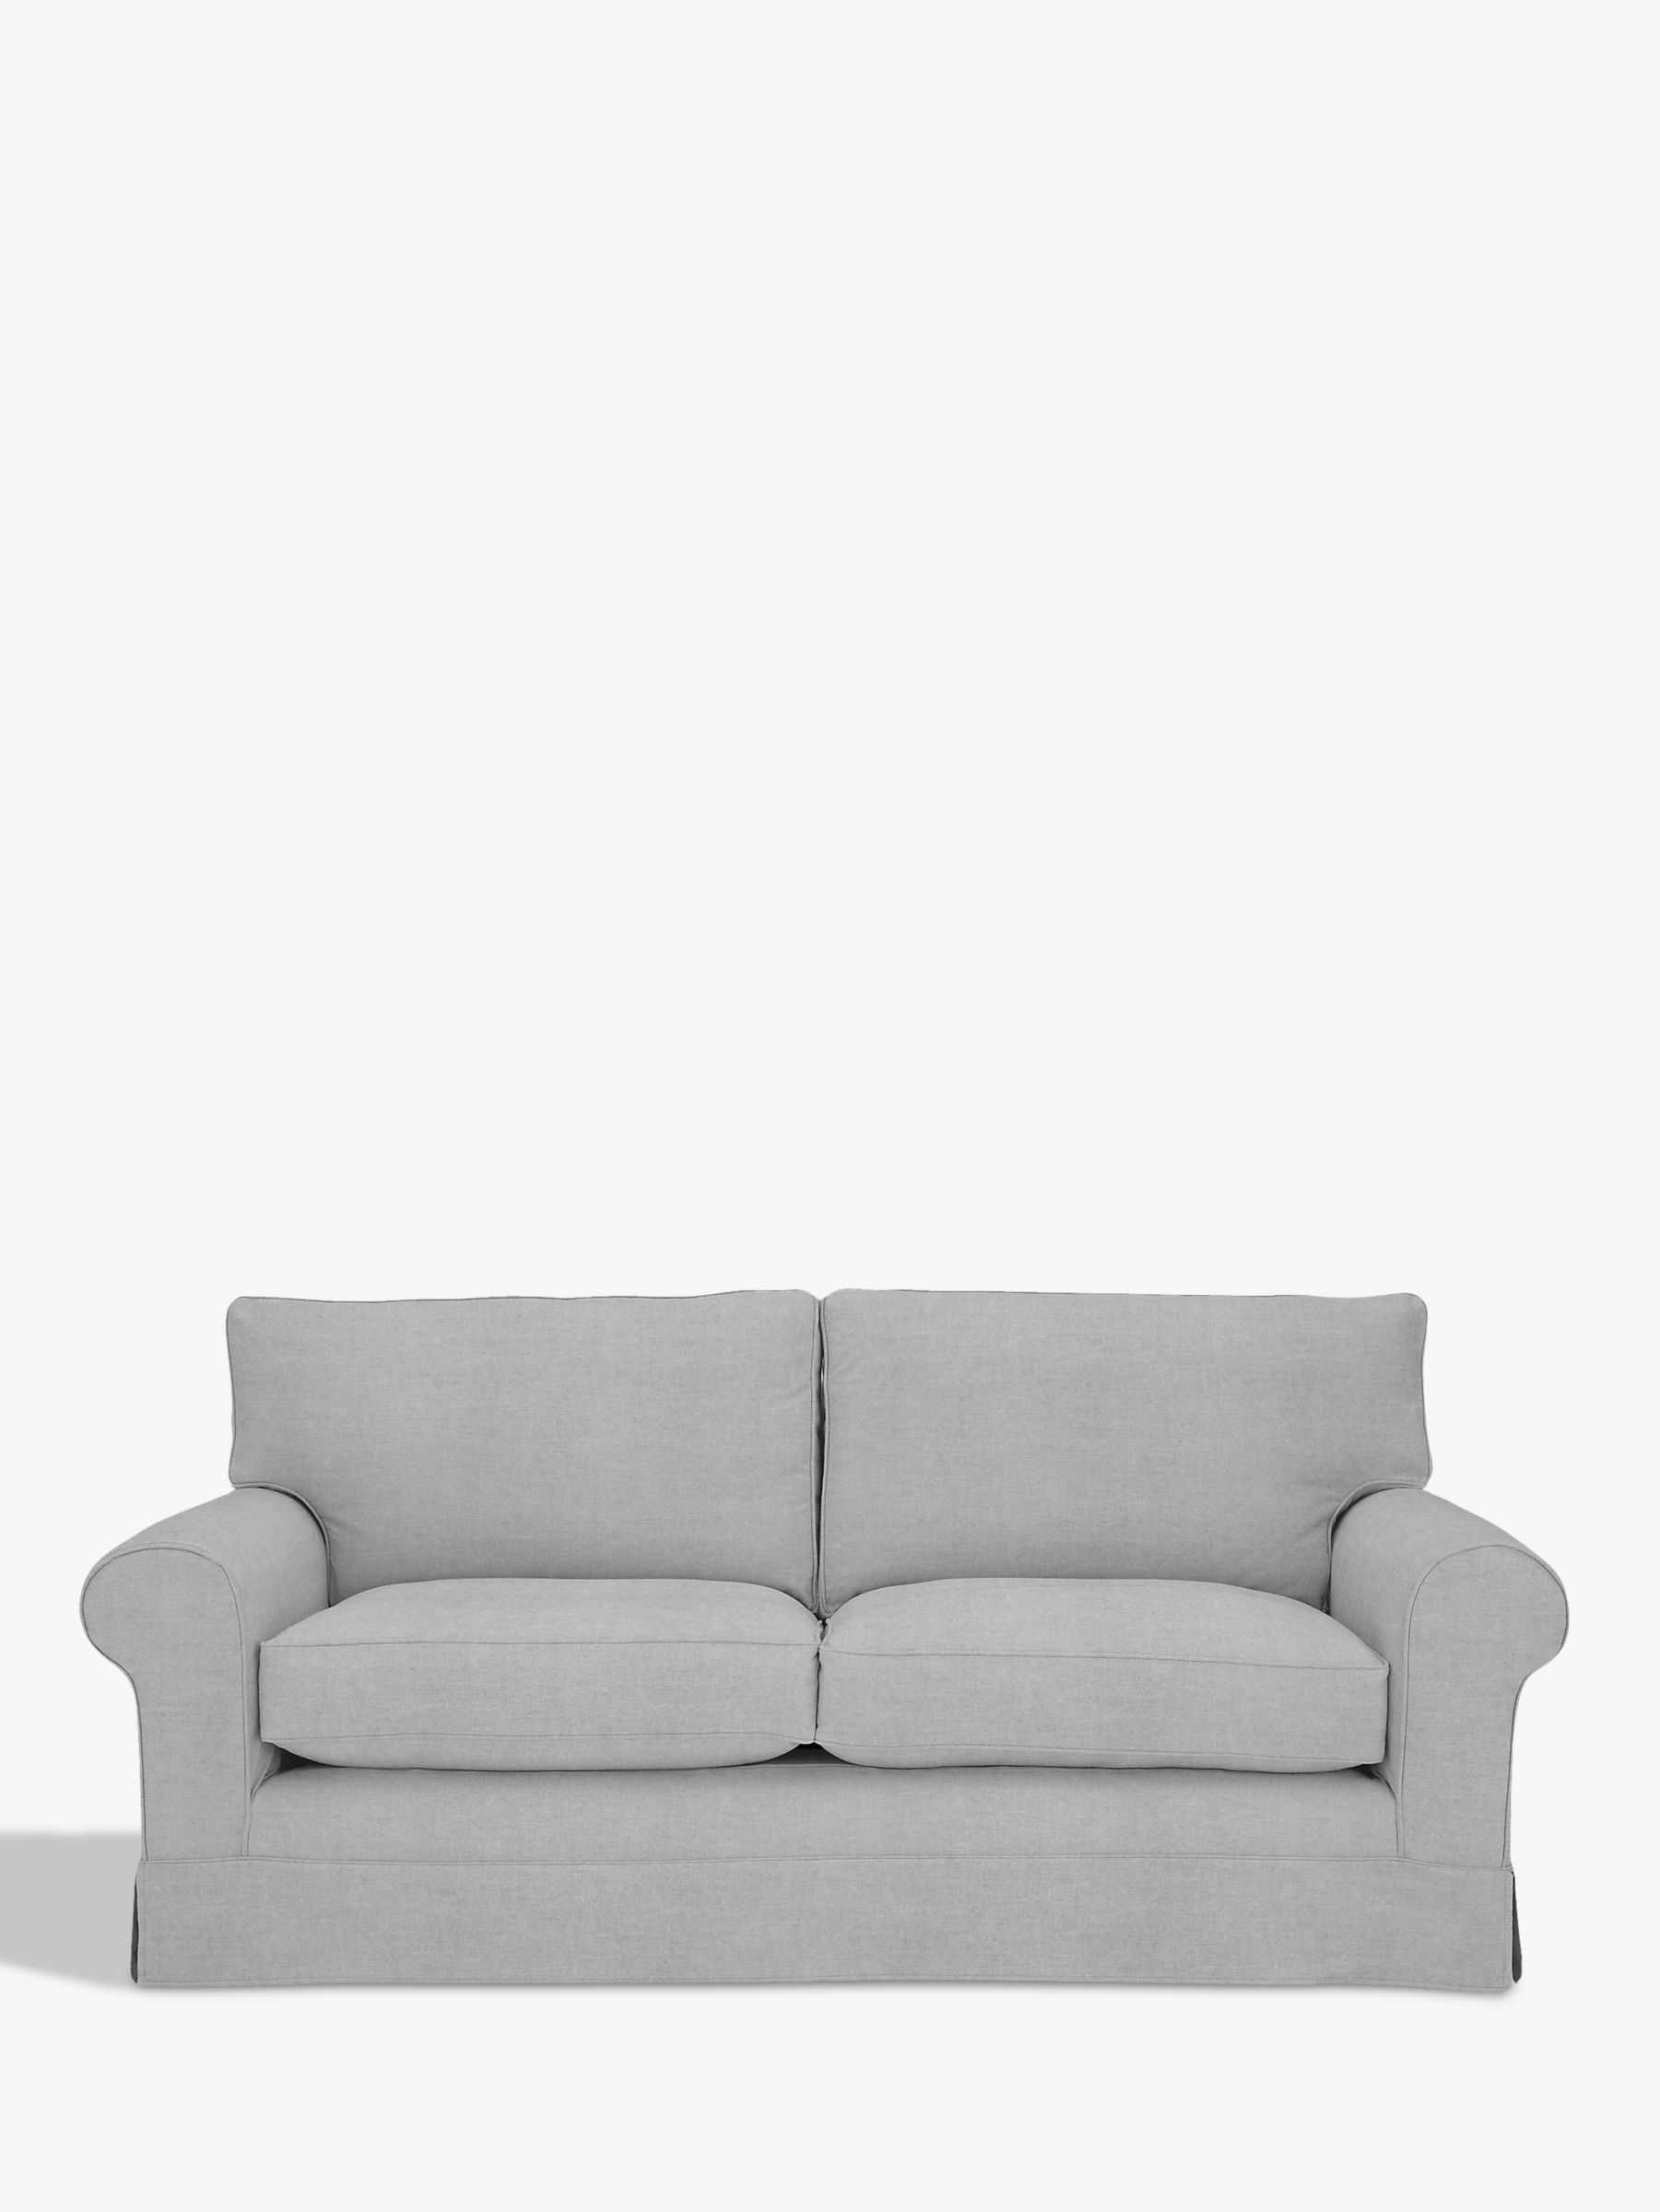 padstow 2 seater sofa laura ashley hickory white construction baci living room